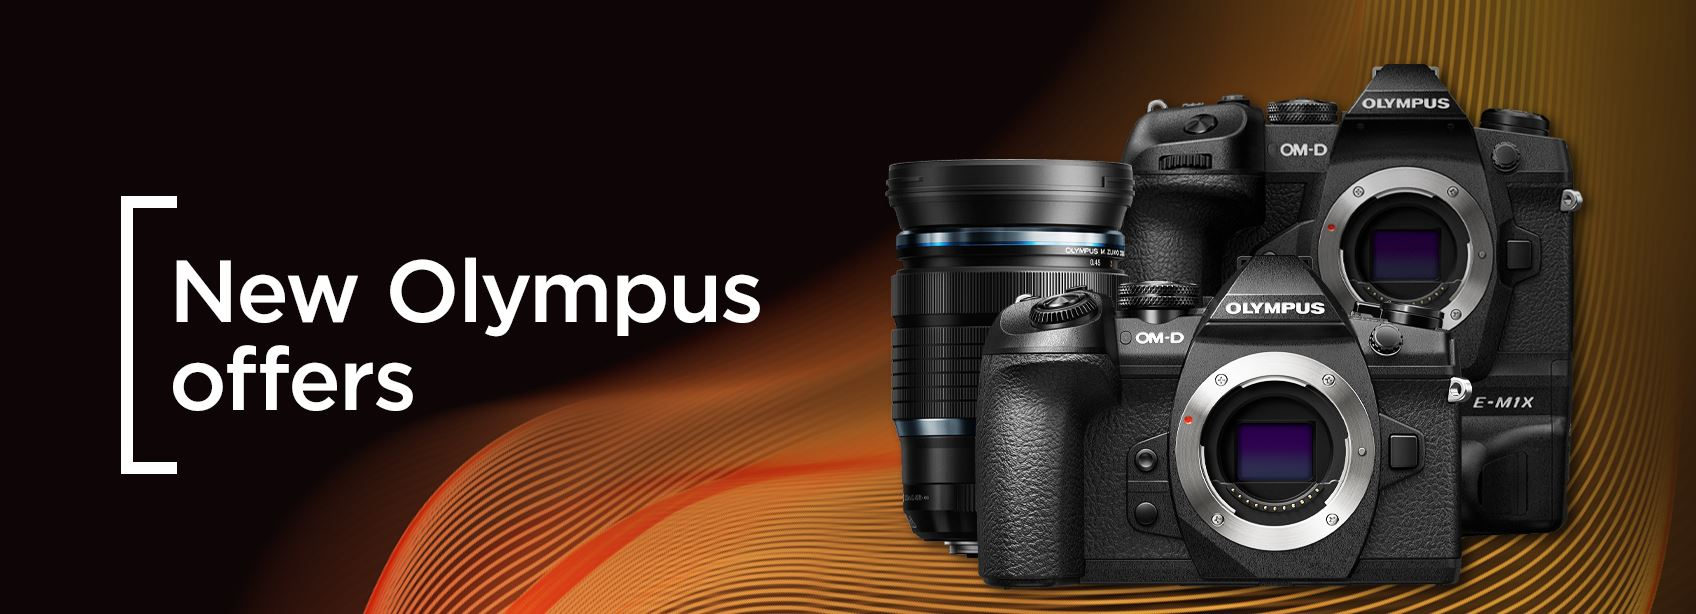 New Olympus Offers